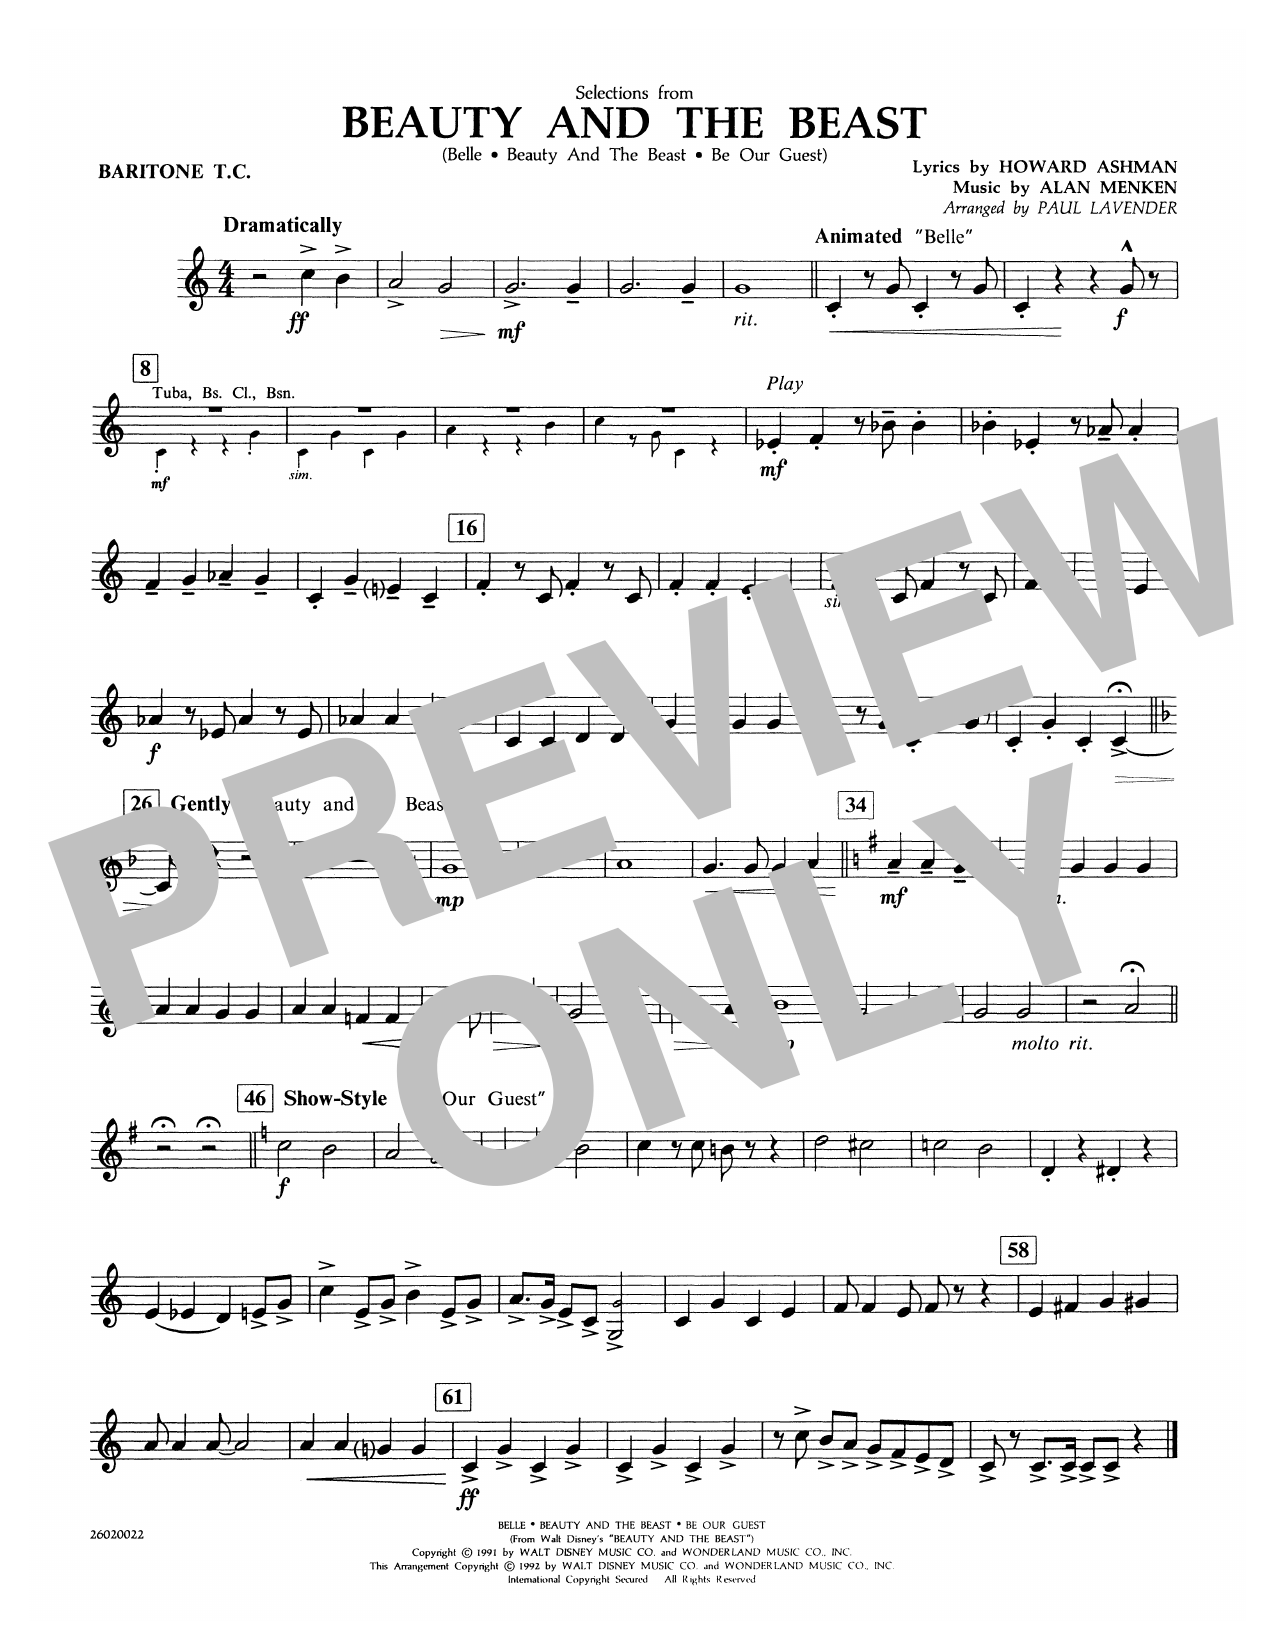 Selections from Beauty and the Beast - Baritone T.C. Partition Digitale